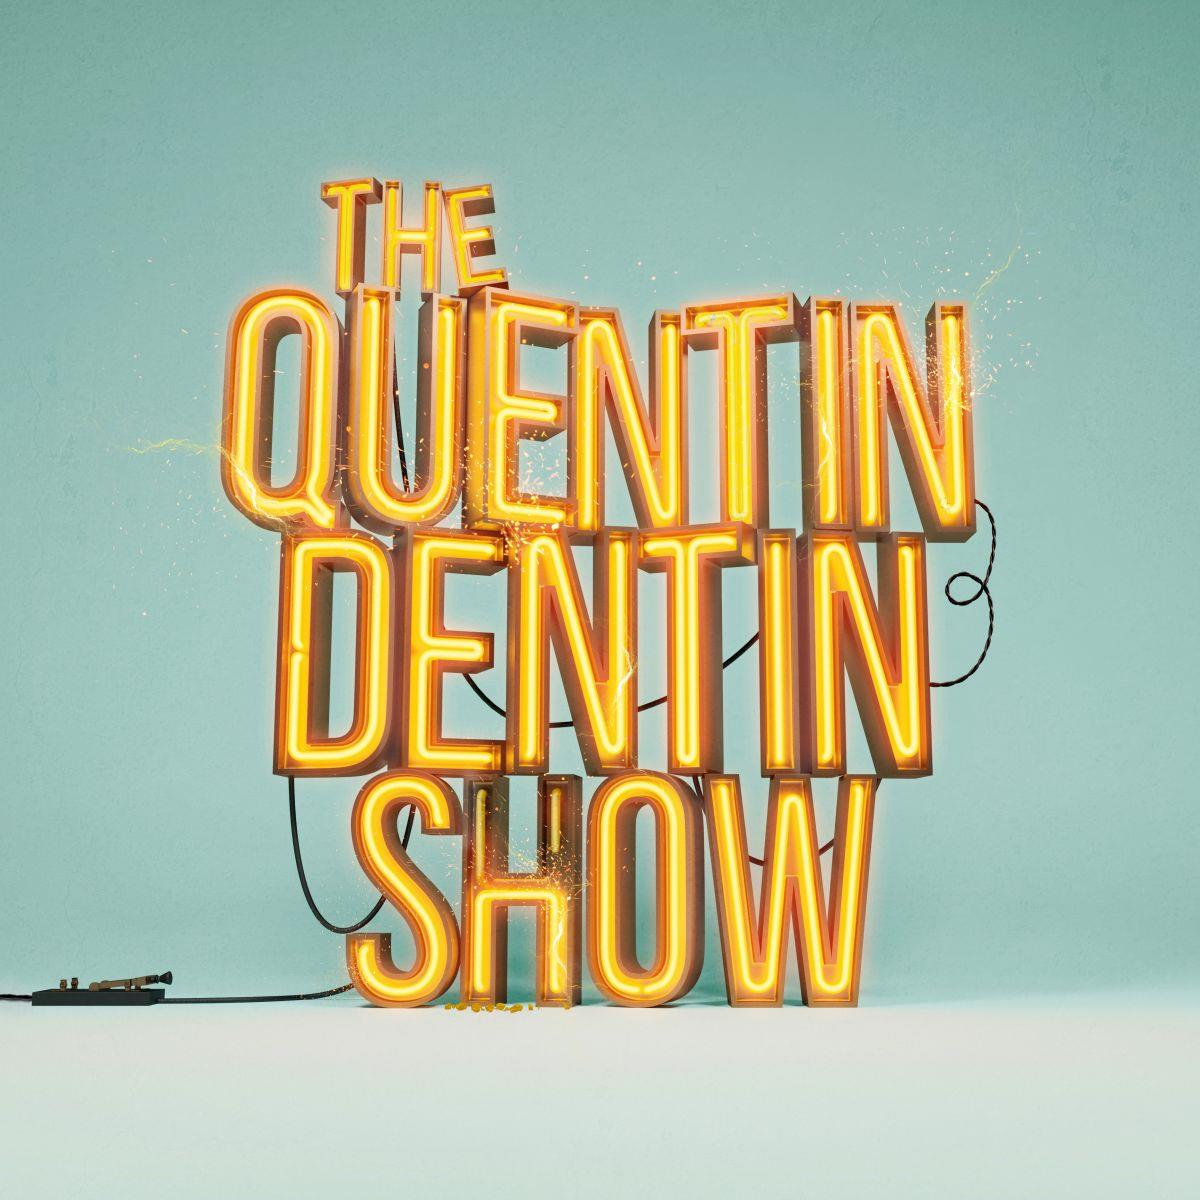 The Quentin Dentin Gallery Image